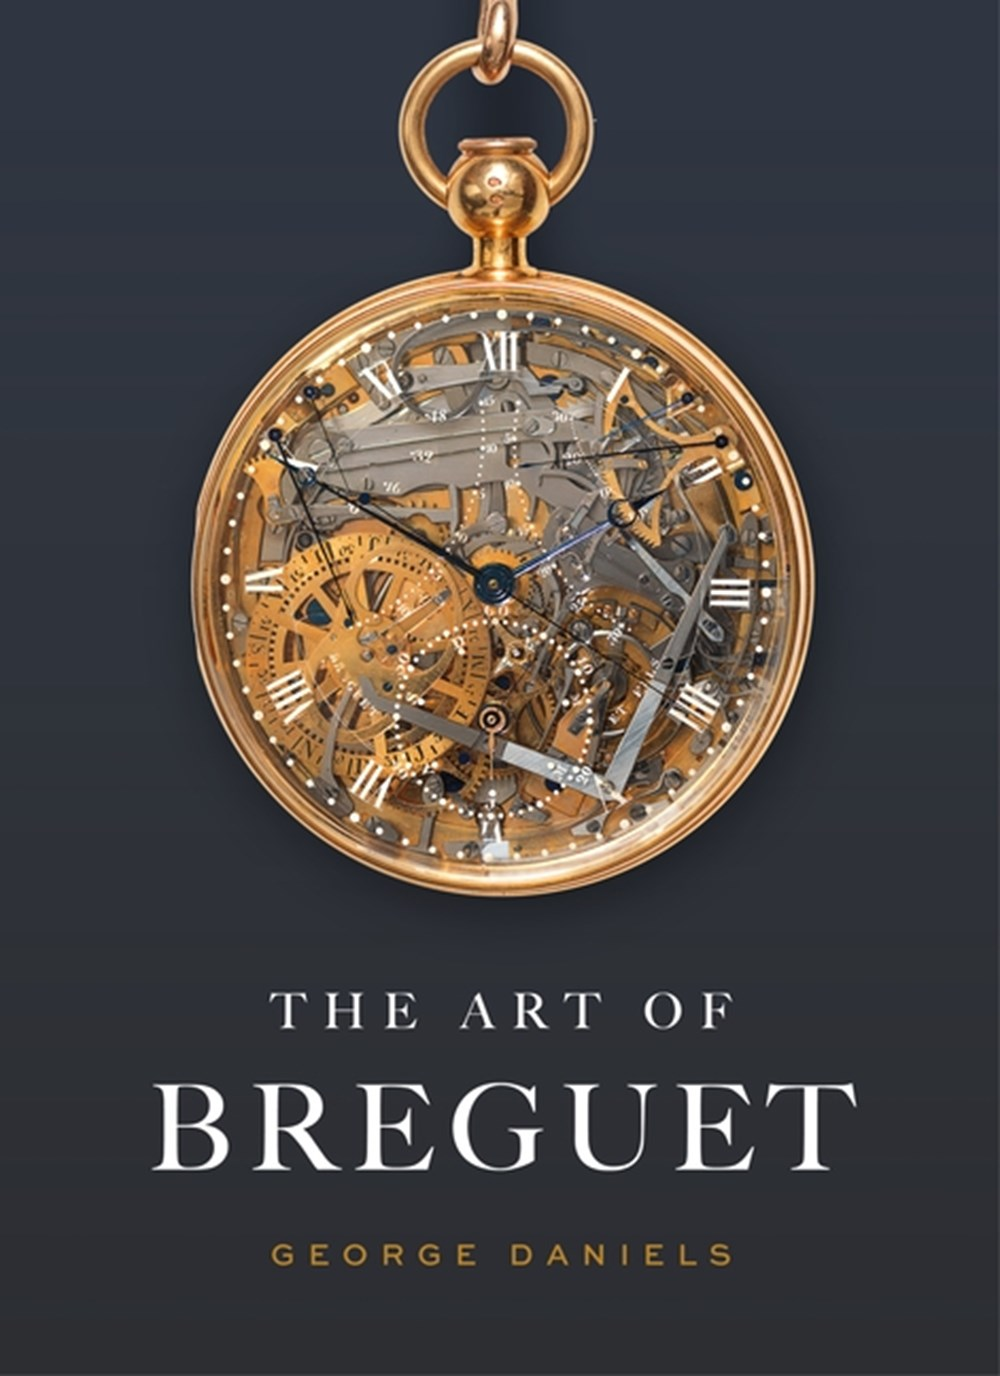 Art of Breguet